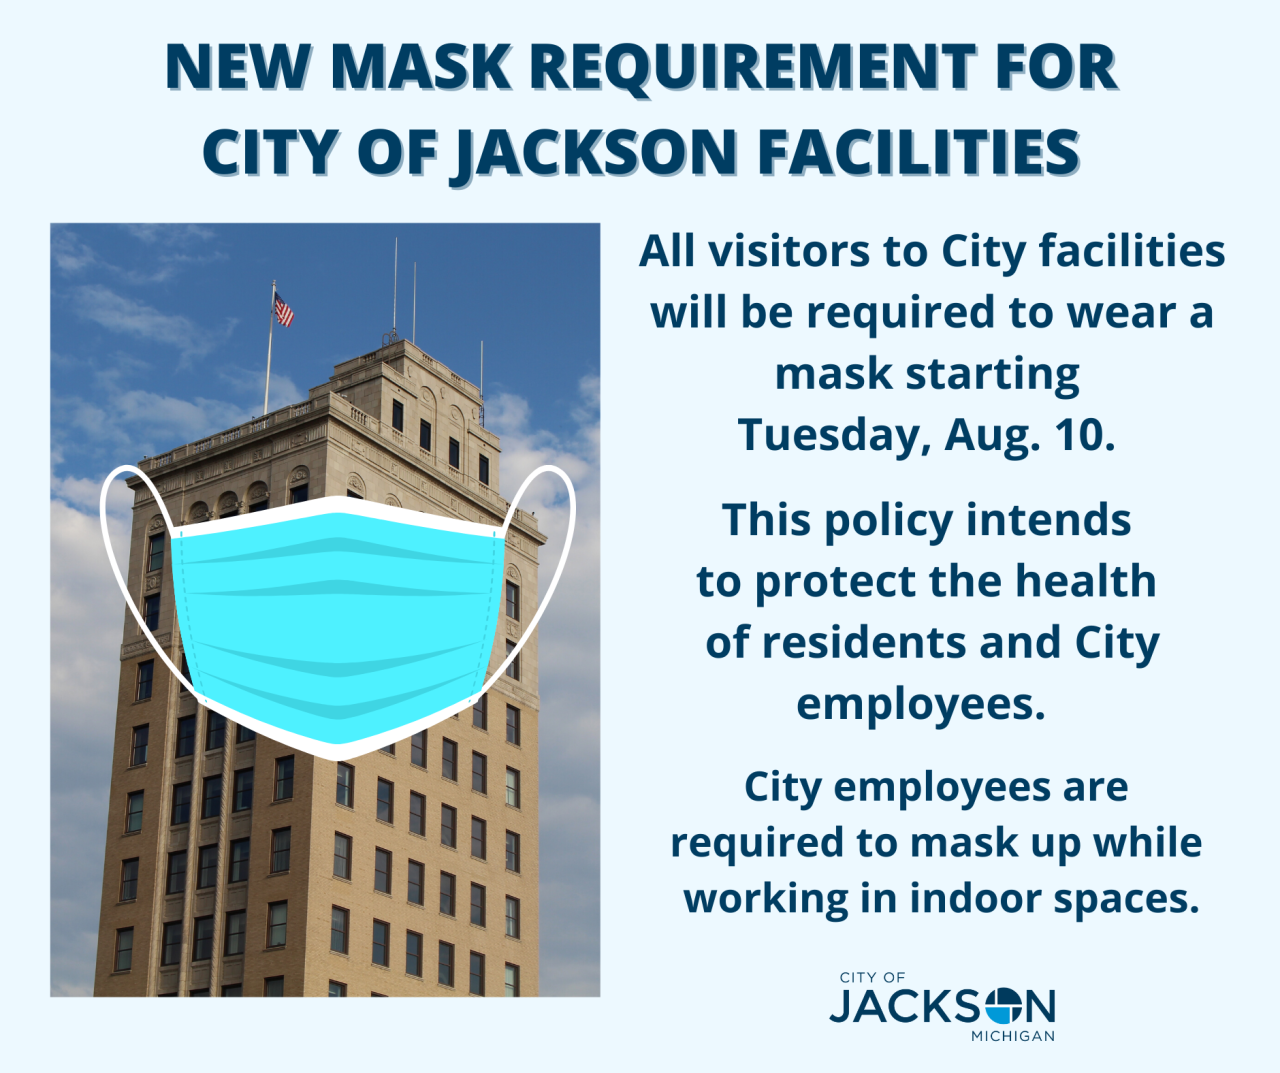 City of Jackson mask policy